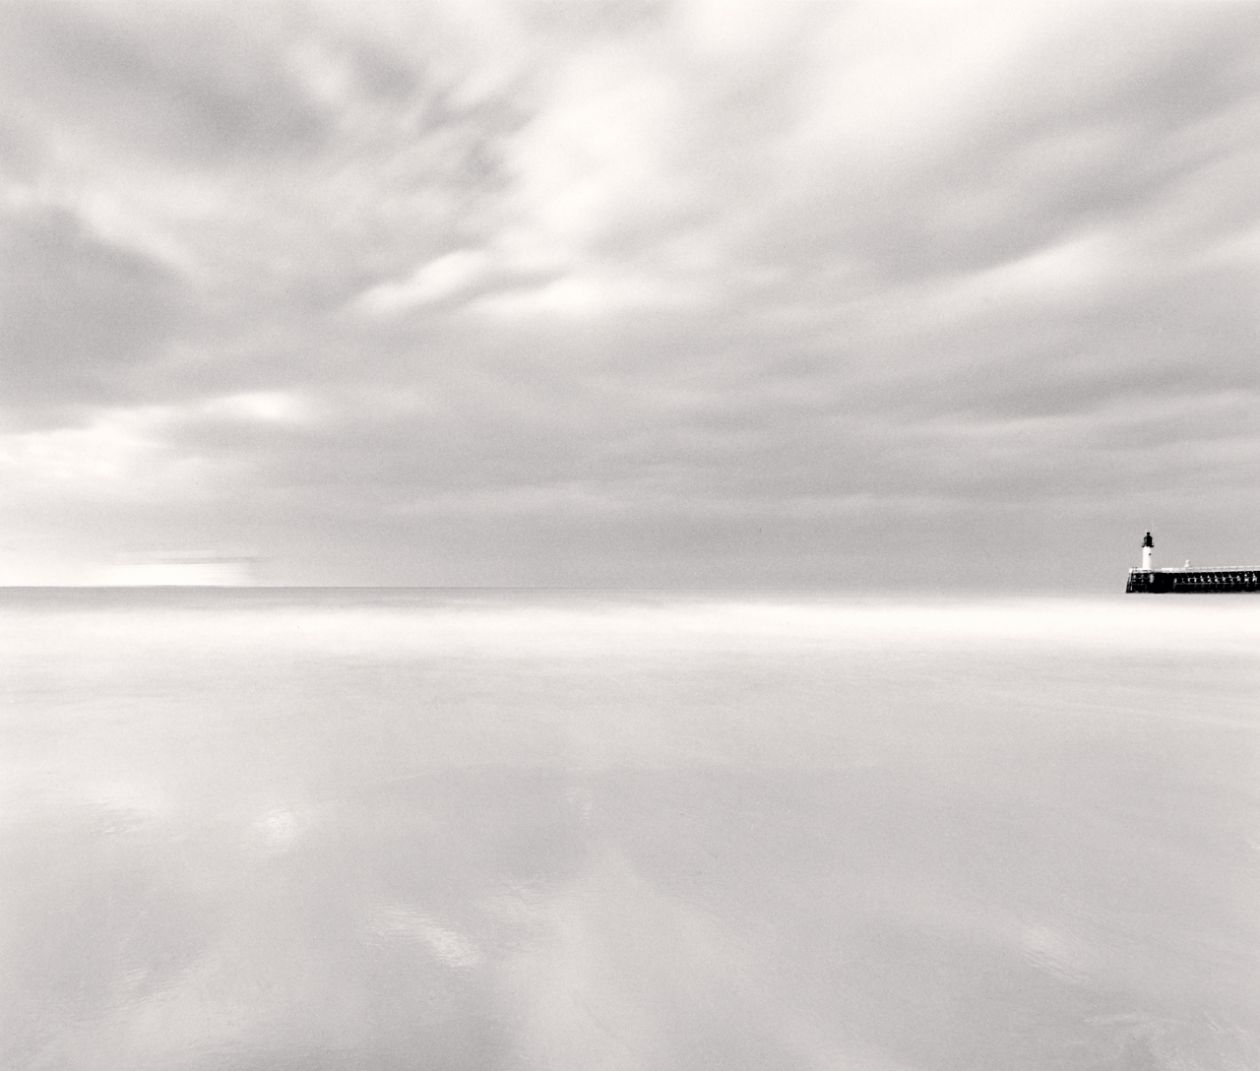 Ferry Departure, Calais (1998) by Michael Kenna